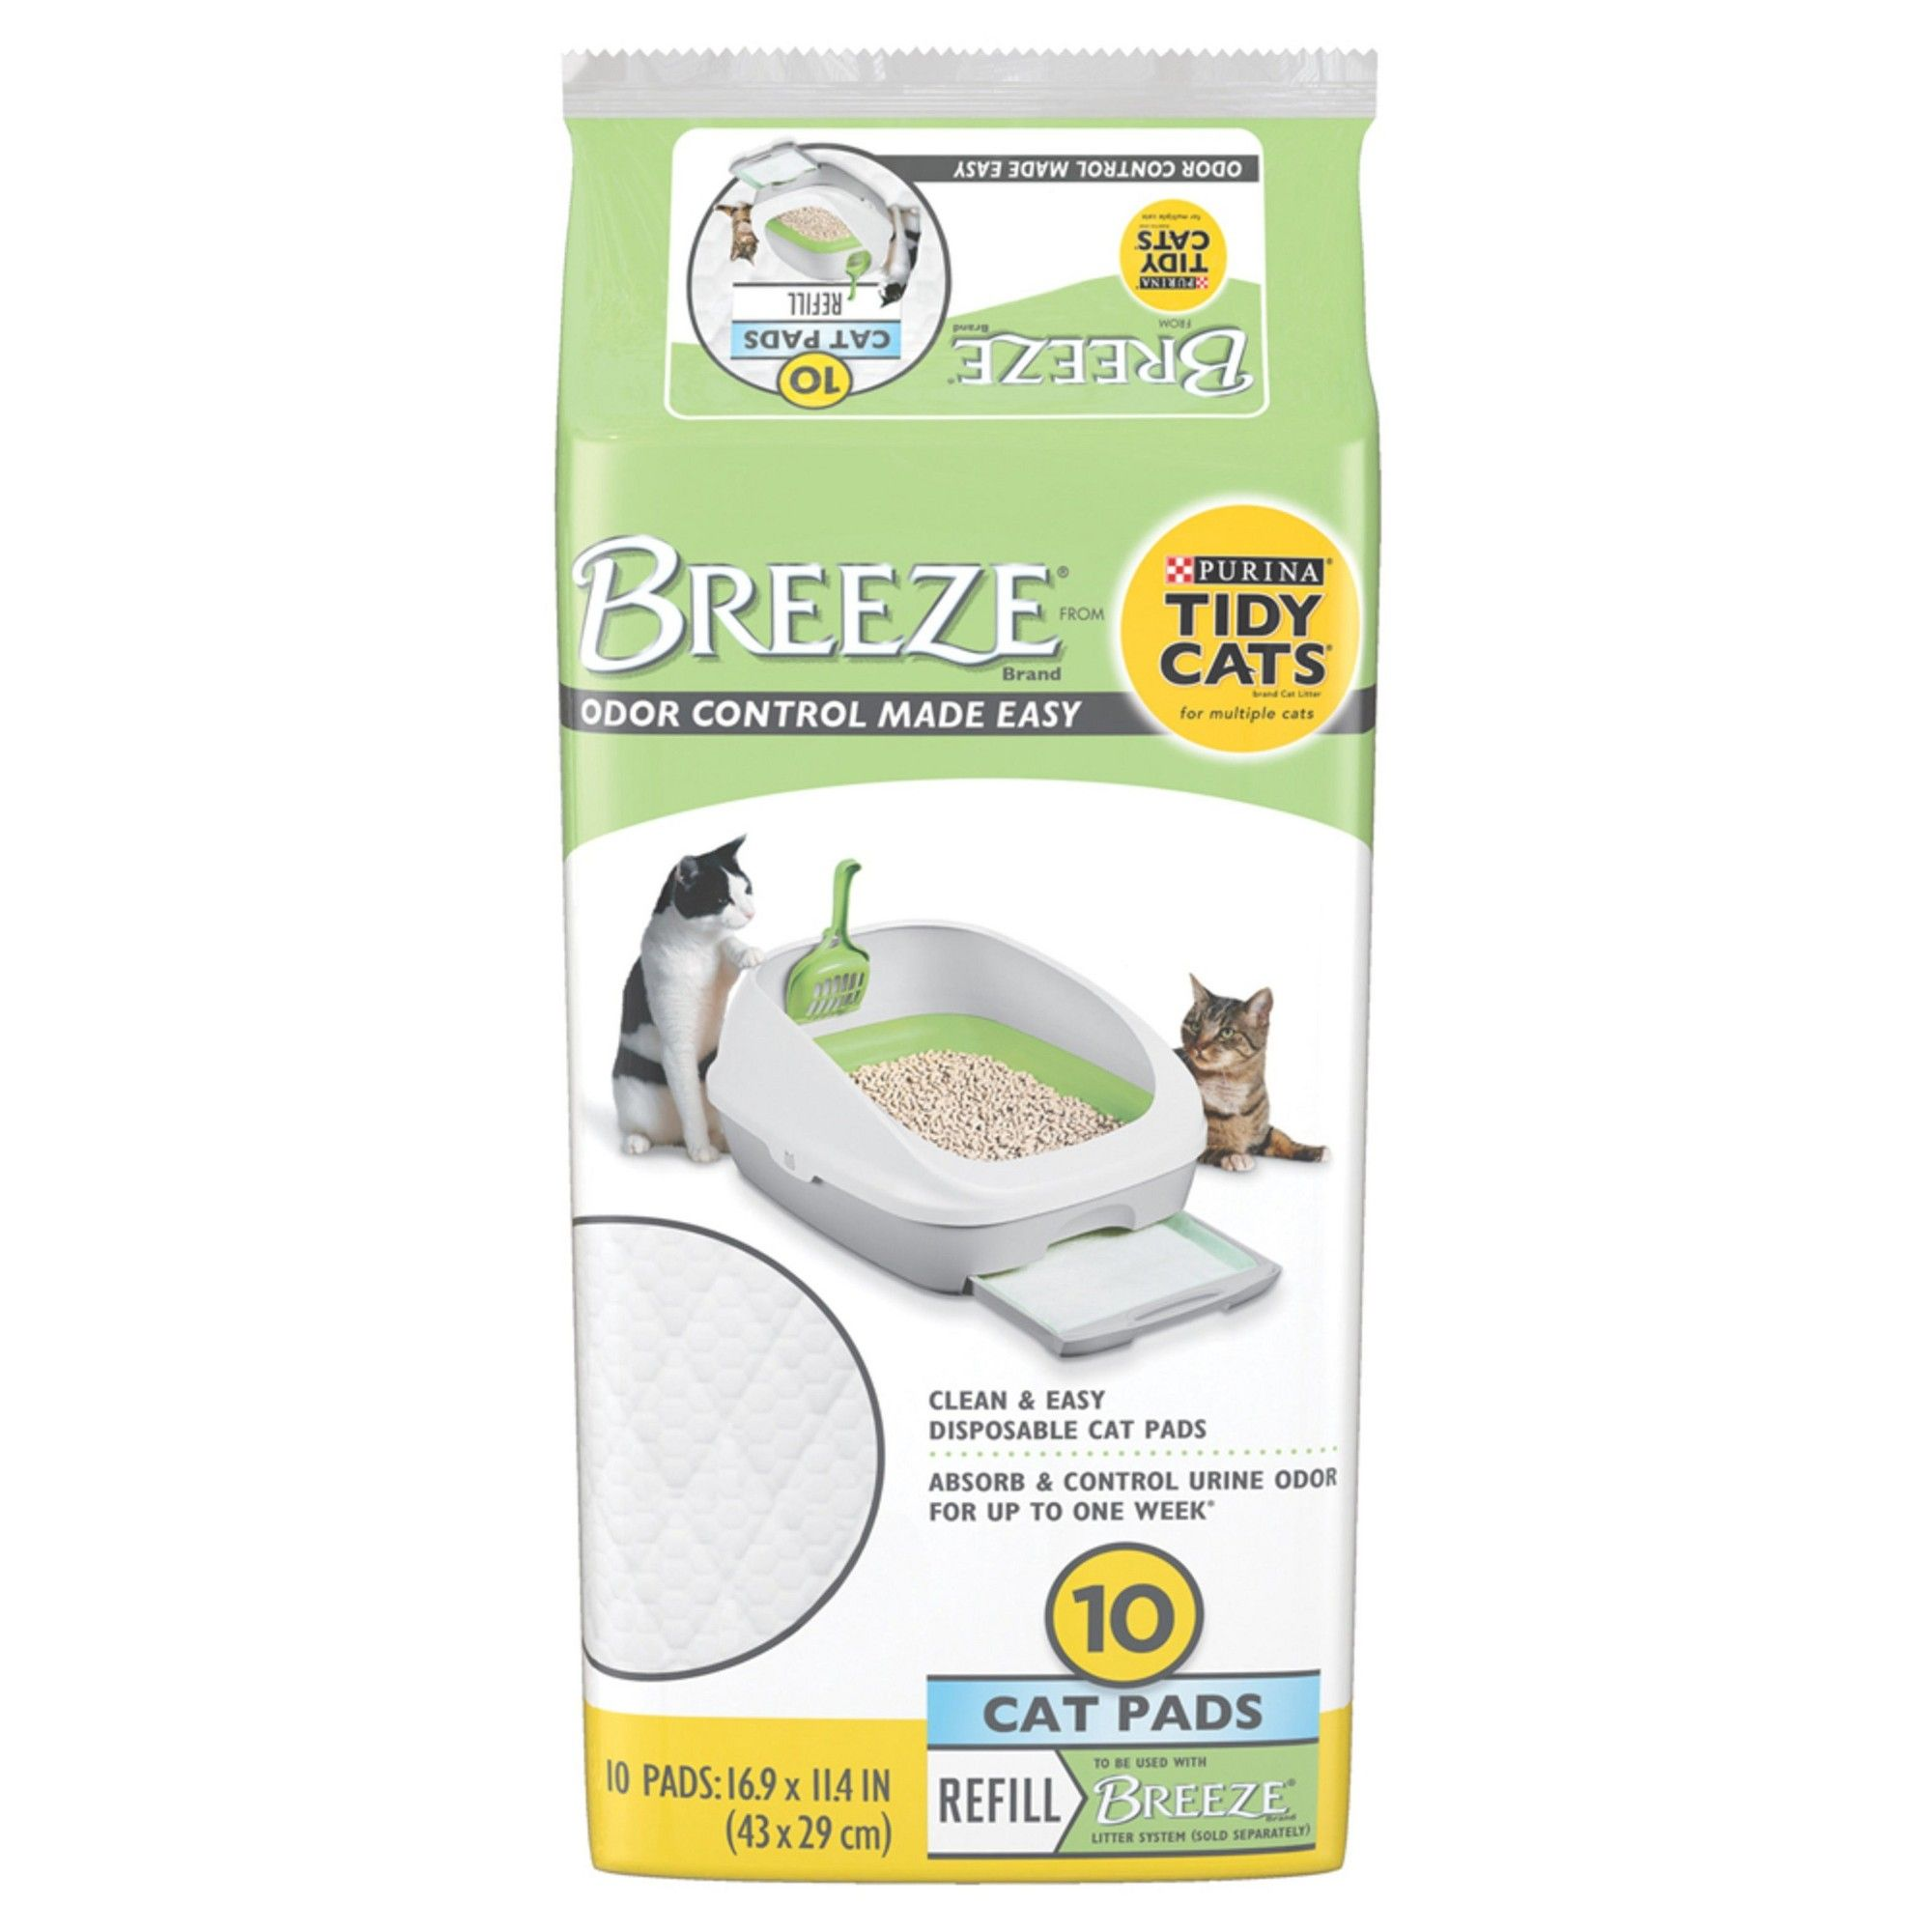 Tidy Cats Breeze Cat Pads Spring Clean Scented Tidy cats